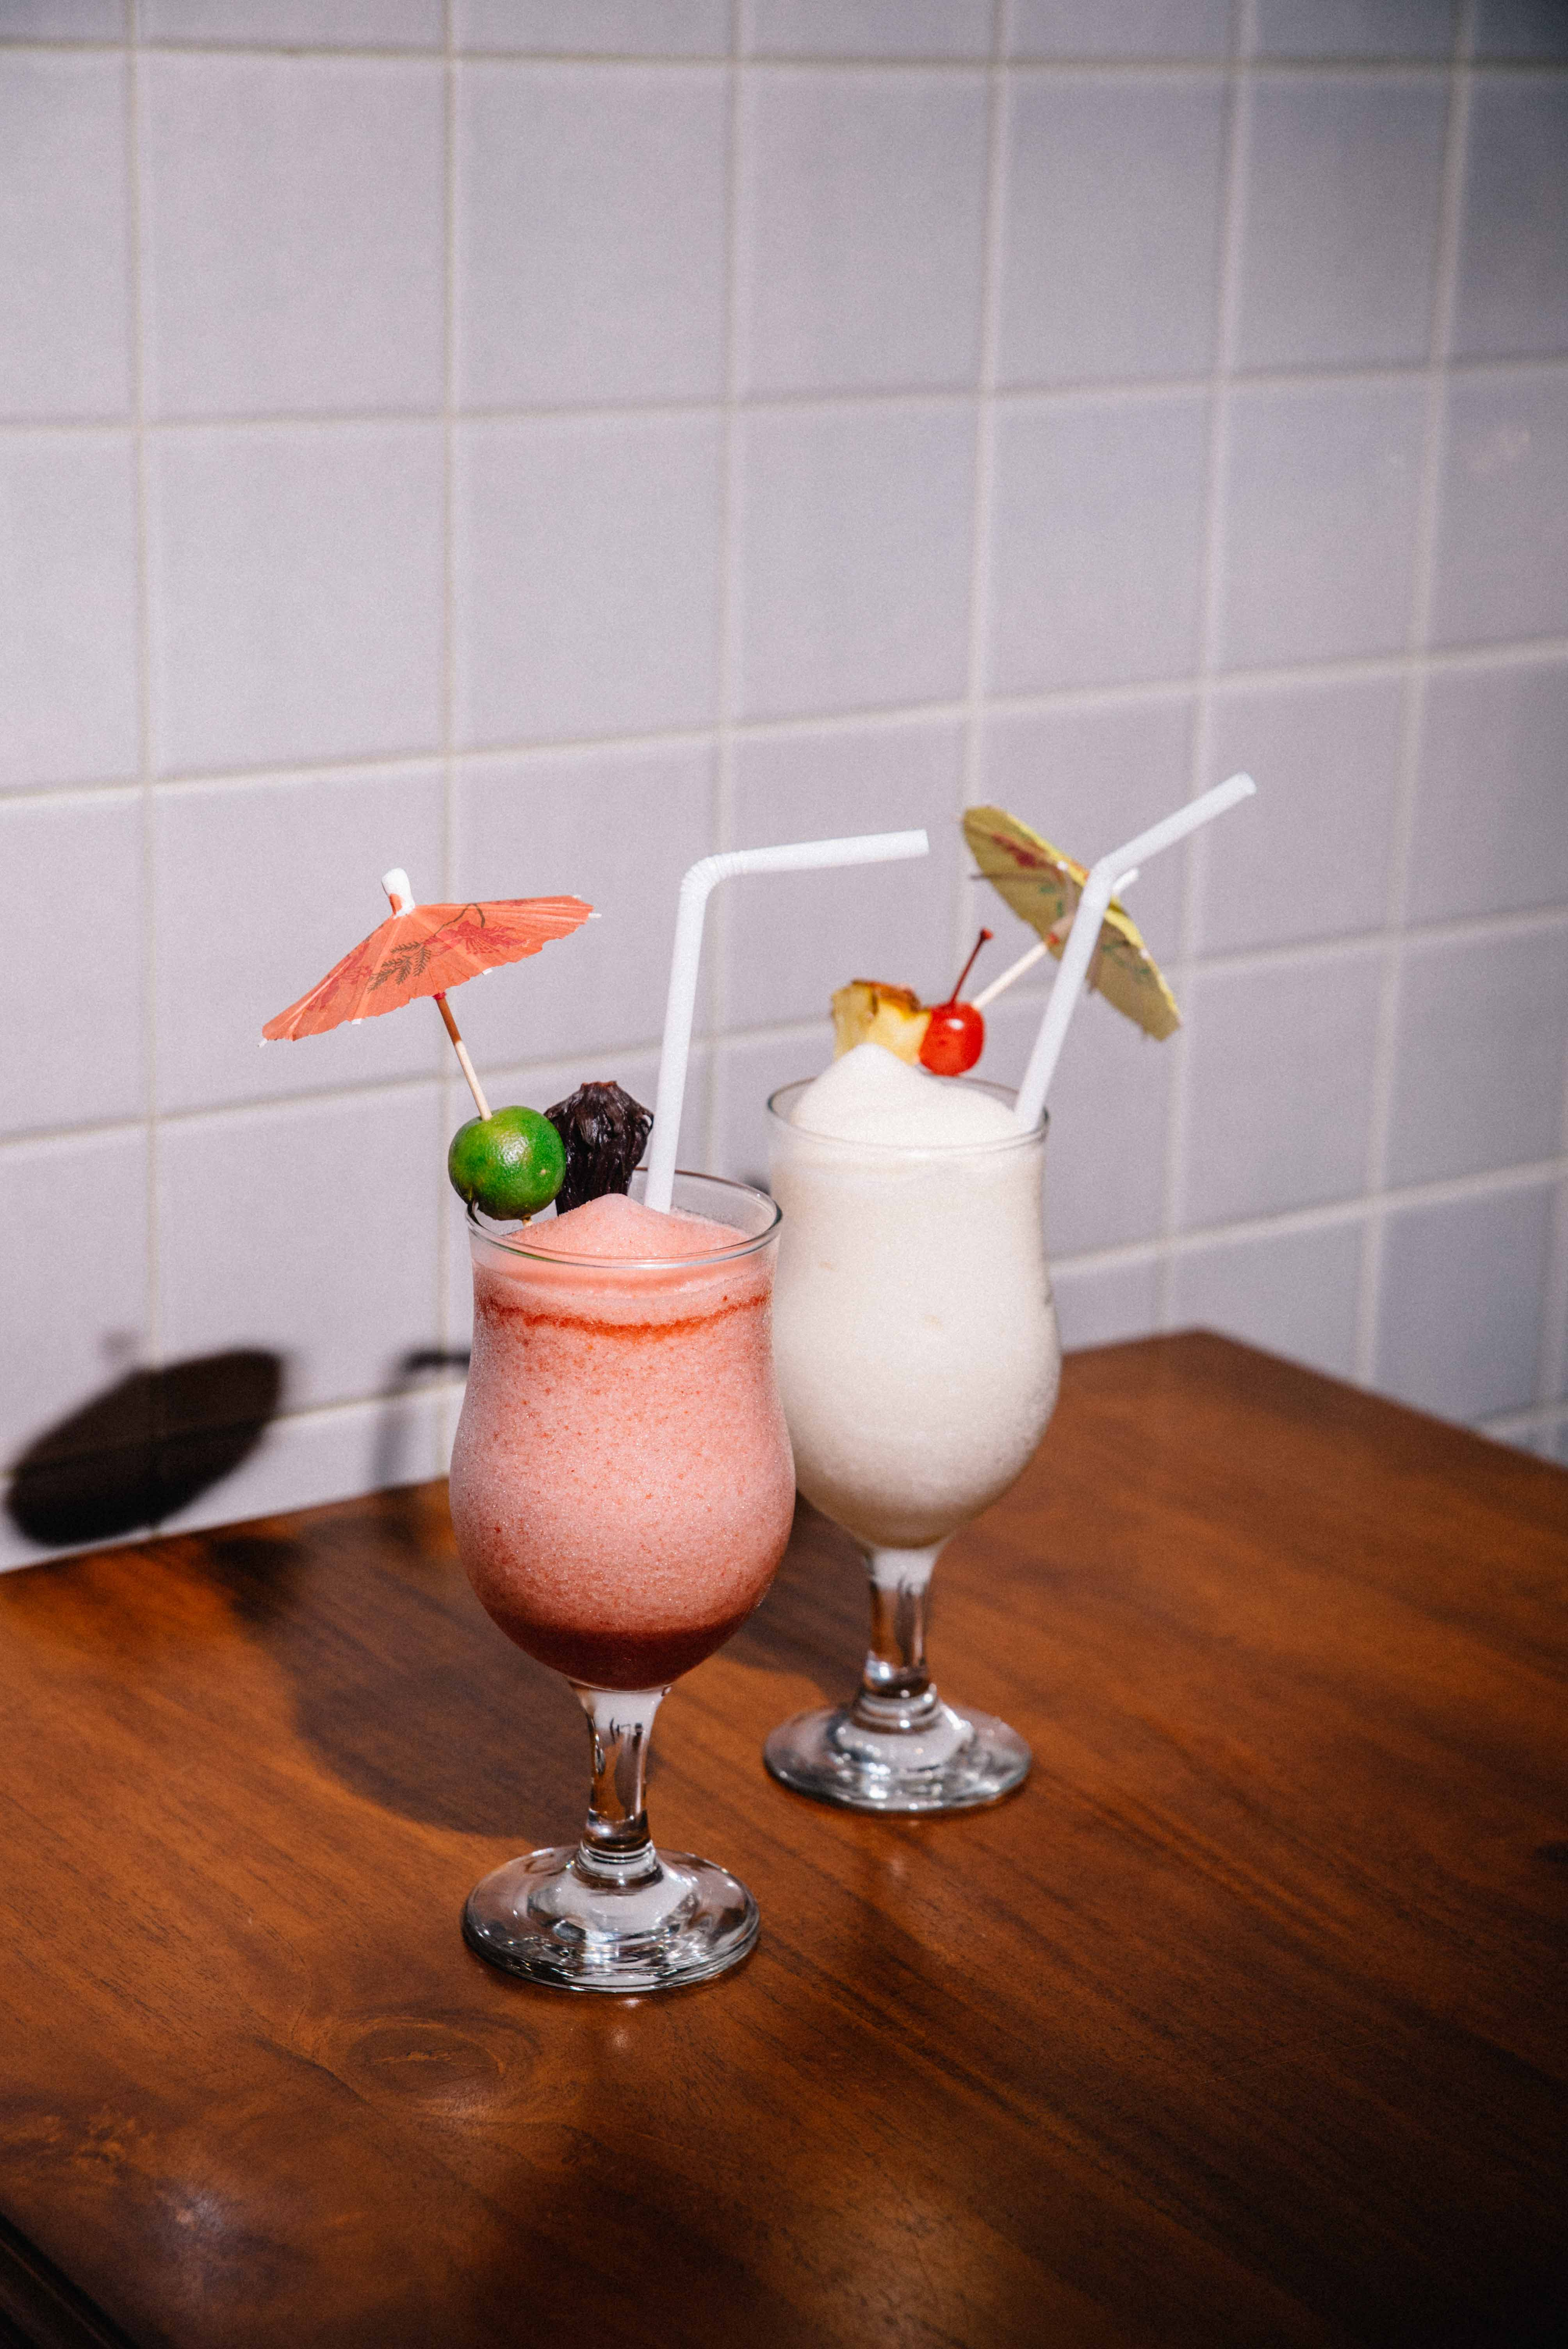 These drinks strike a cool contrast to FowlBread's spicy chicken.